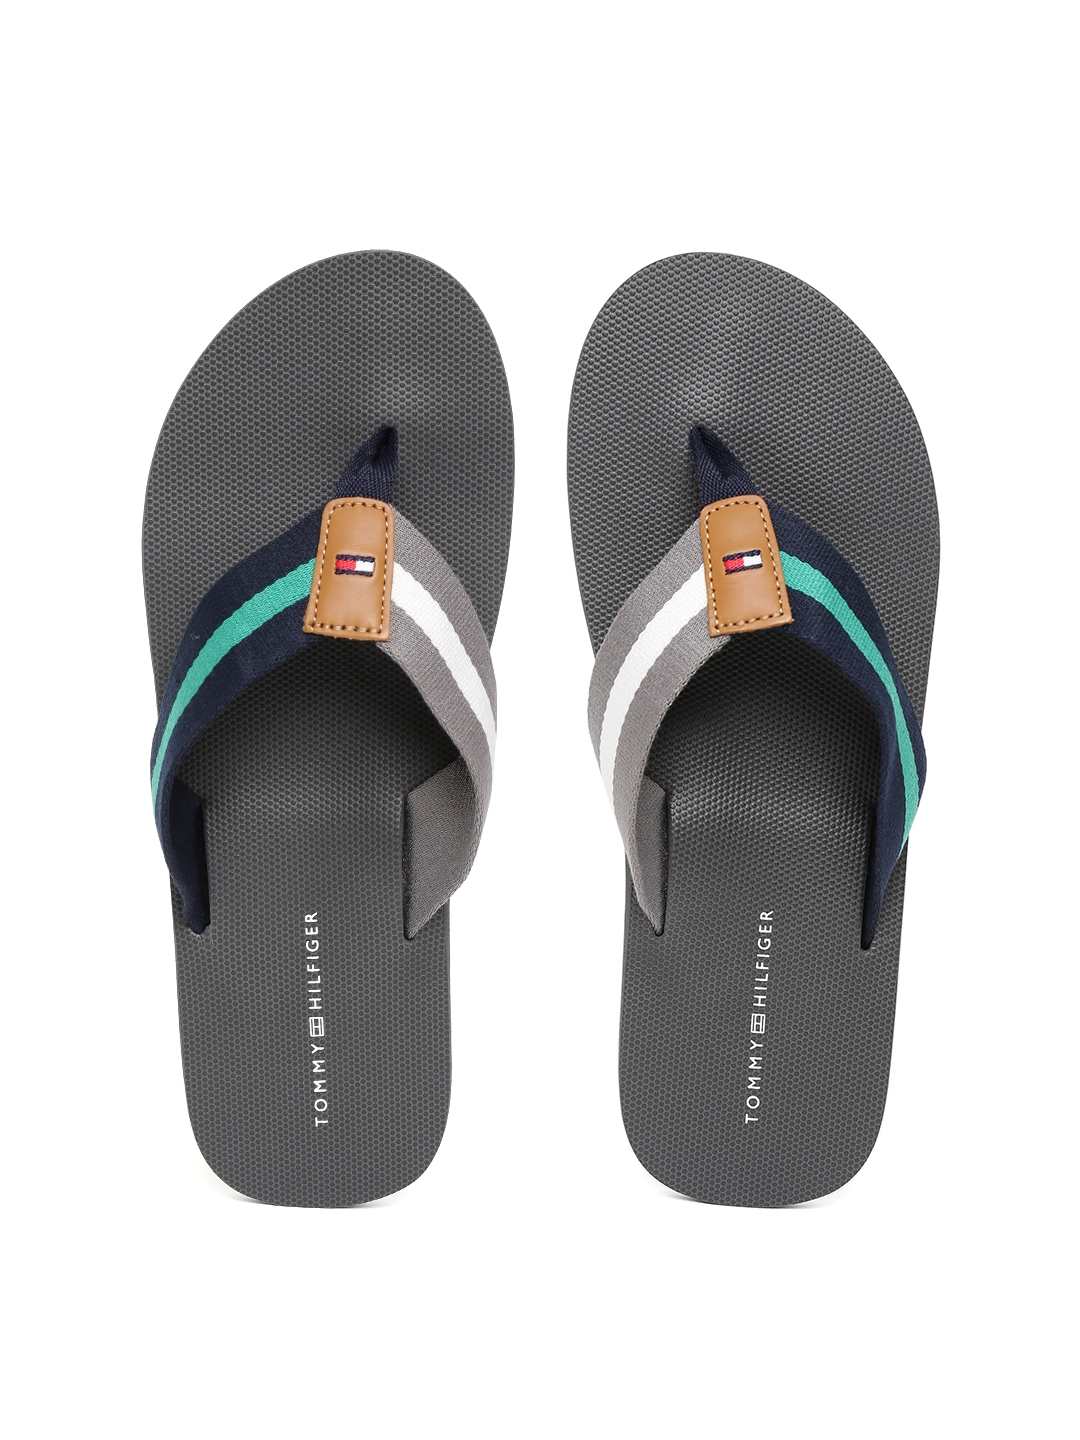 7e39dc2d0069 Buy Tommy Hilfiger Men Grey   Navy Blue Striped Thong Flip Flops ...